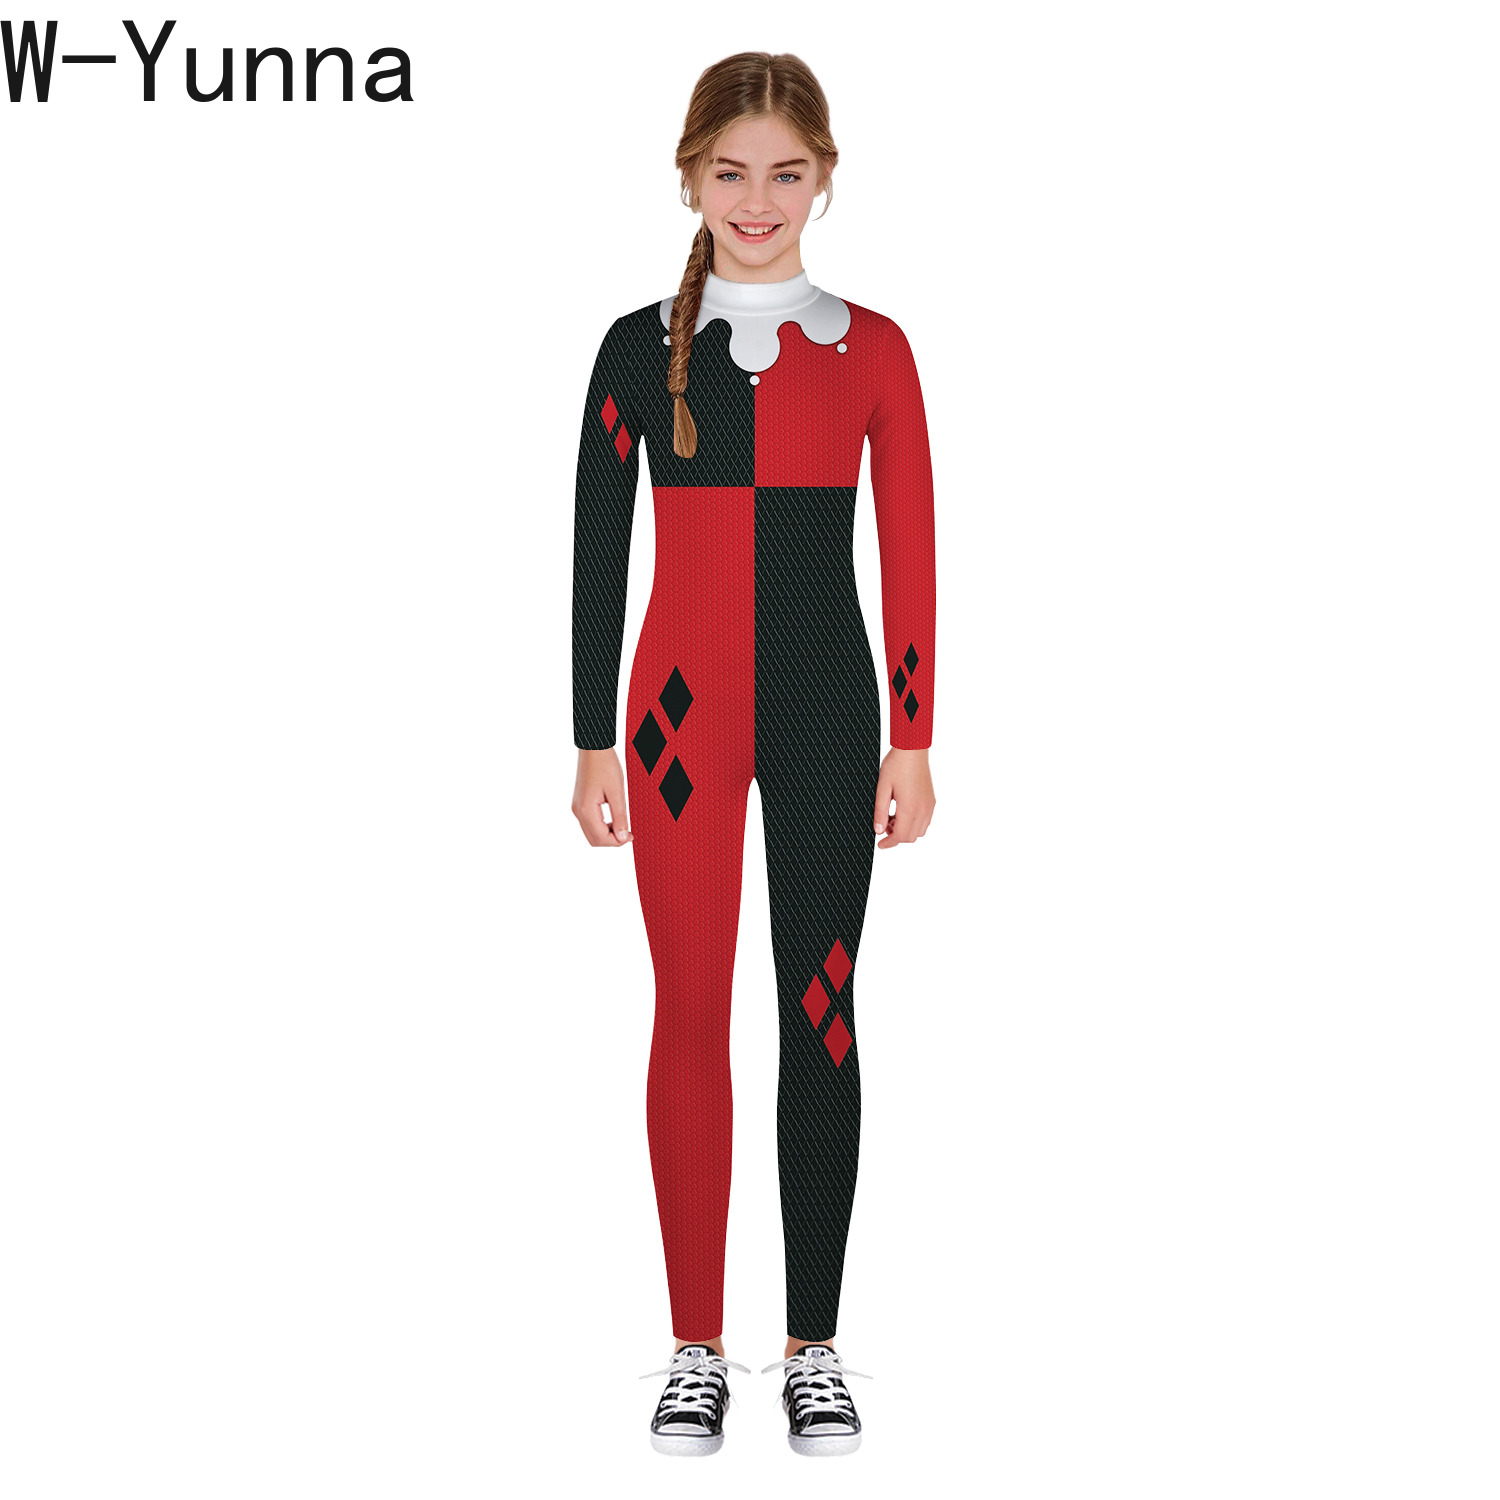 Image 3 - W Yunna 2019 Autumn Clothes Fashion Skeleton Blood Scary Costume Holloween 3d Print Full Sleeves Full Length Jumpsuits for Kids